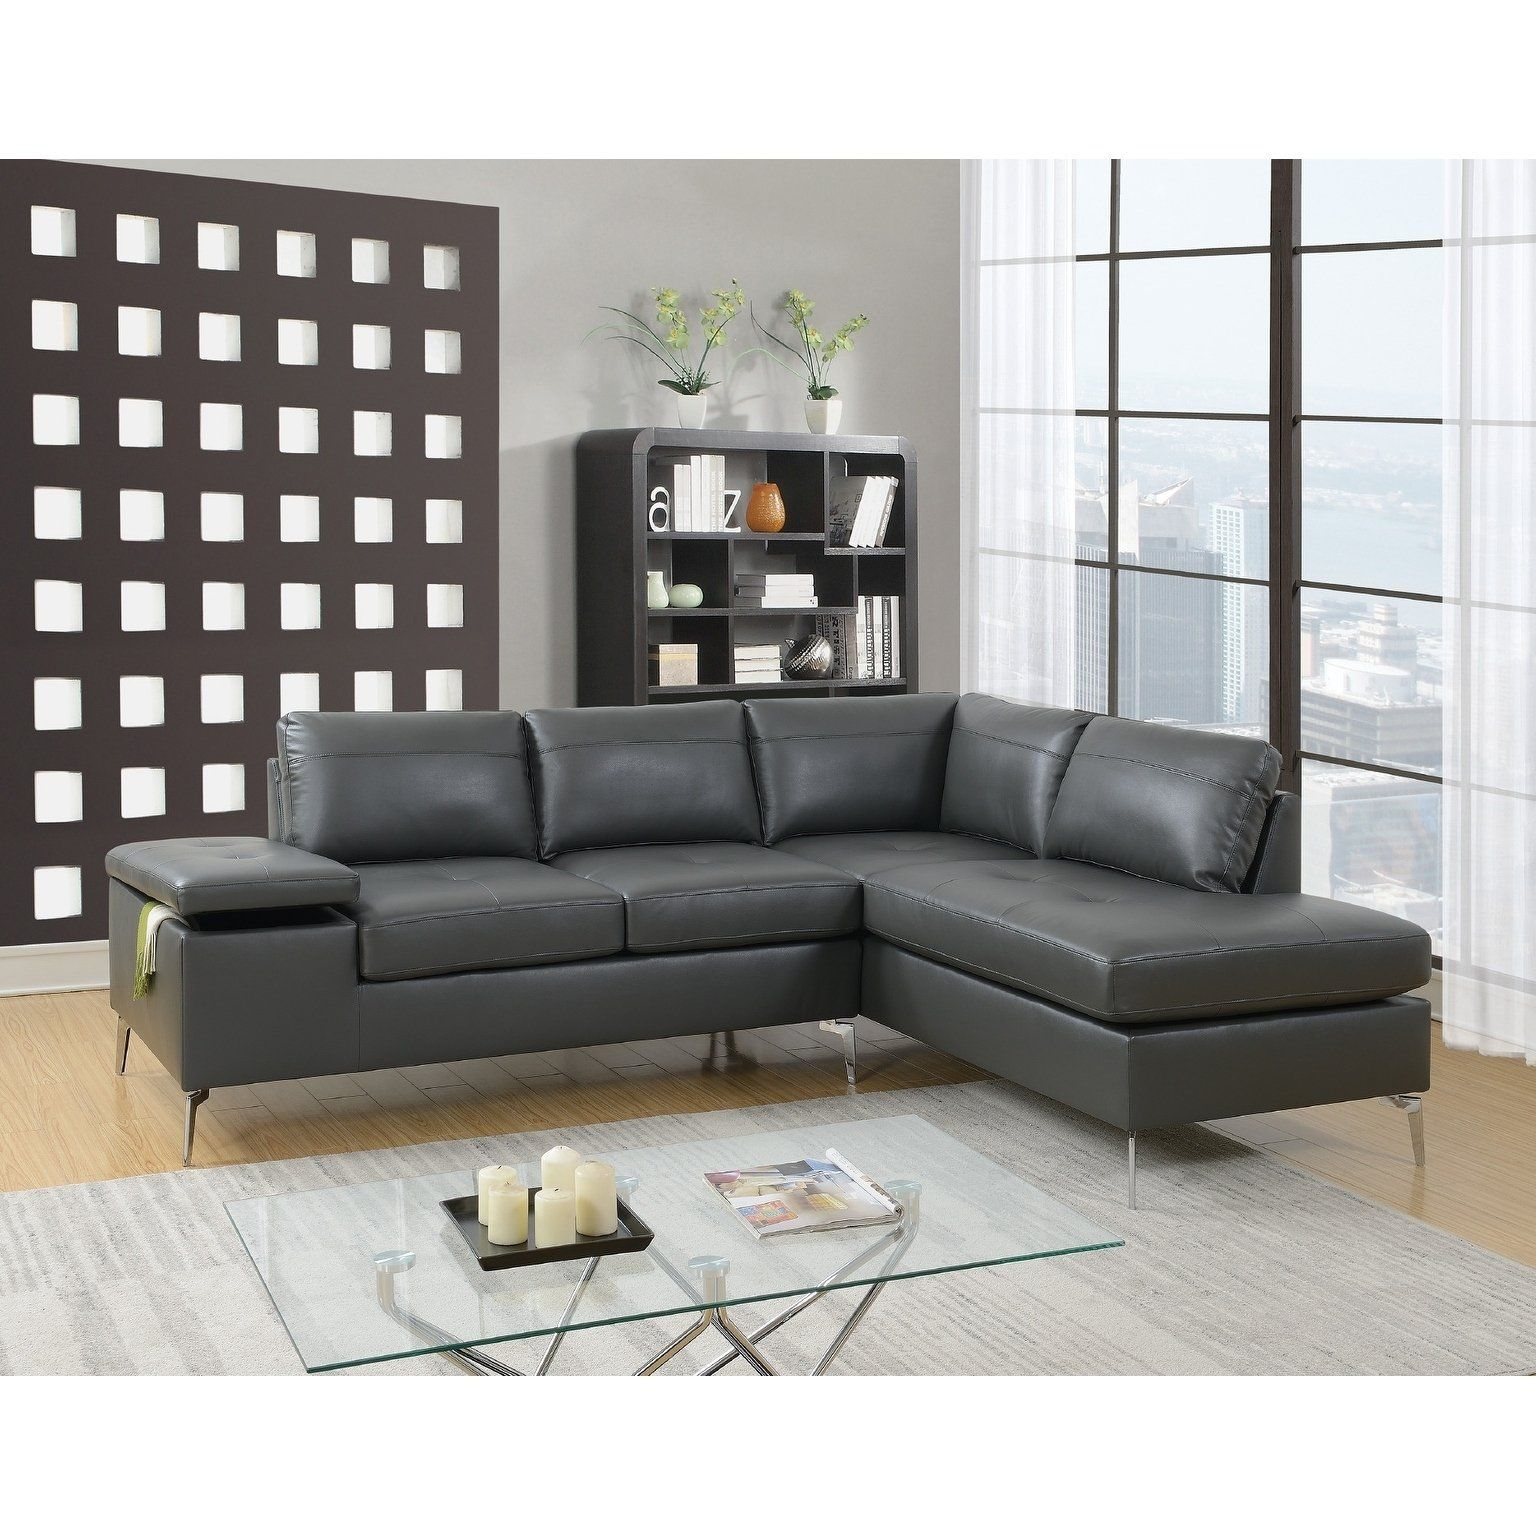 Prime Szymanski Reversible Sectional Gray Grey Faux Leather In Gamerscity Chair Design For Home Gamerscityorg